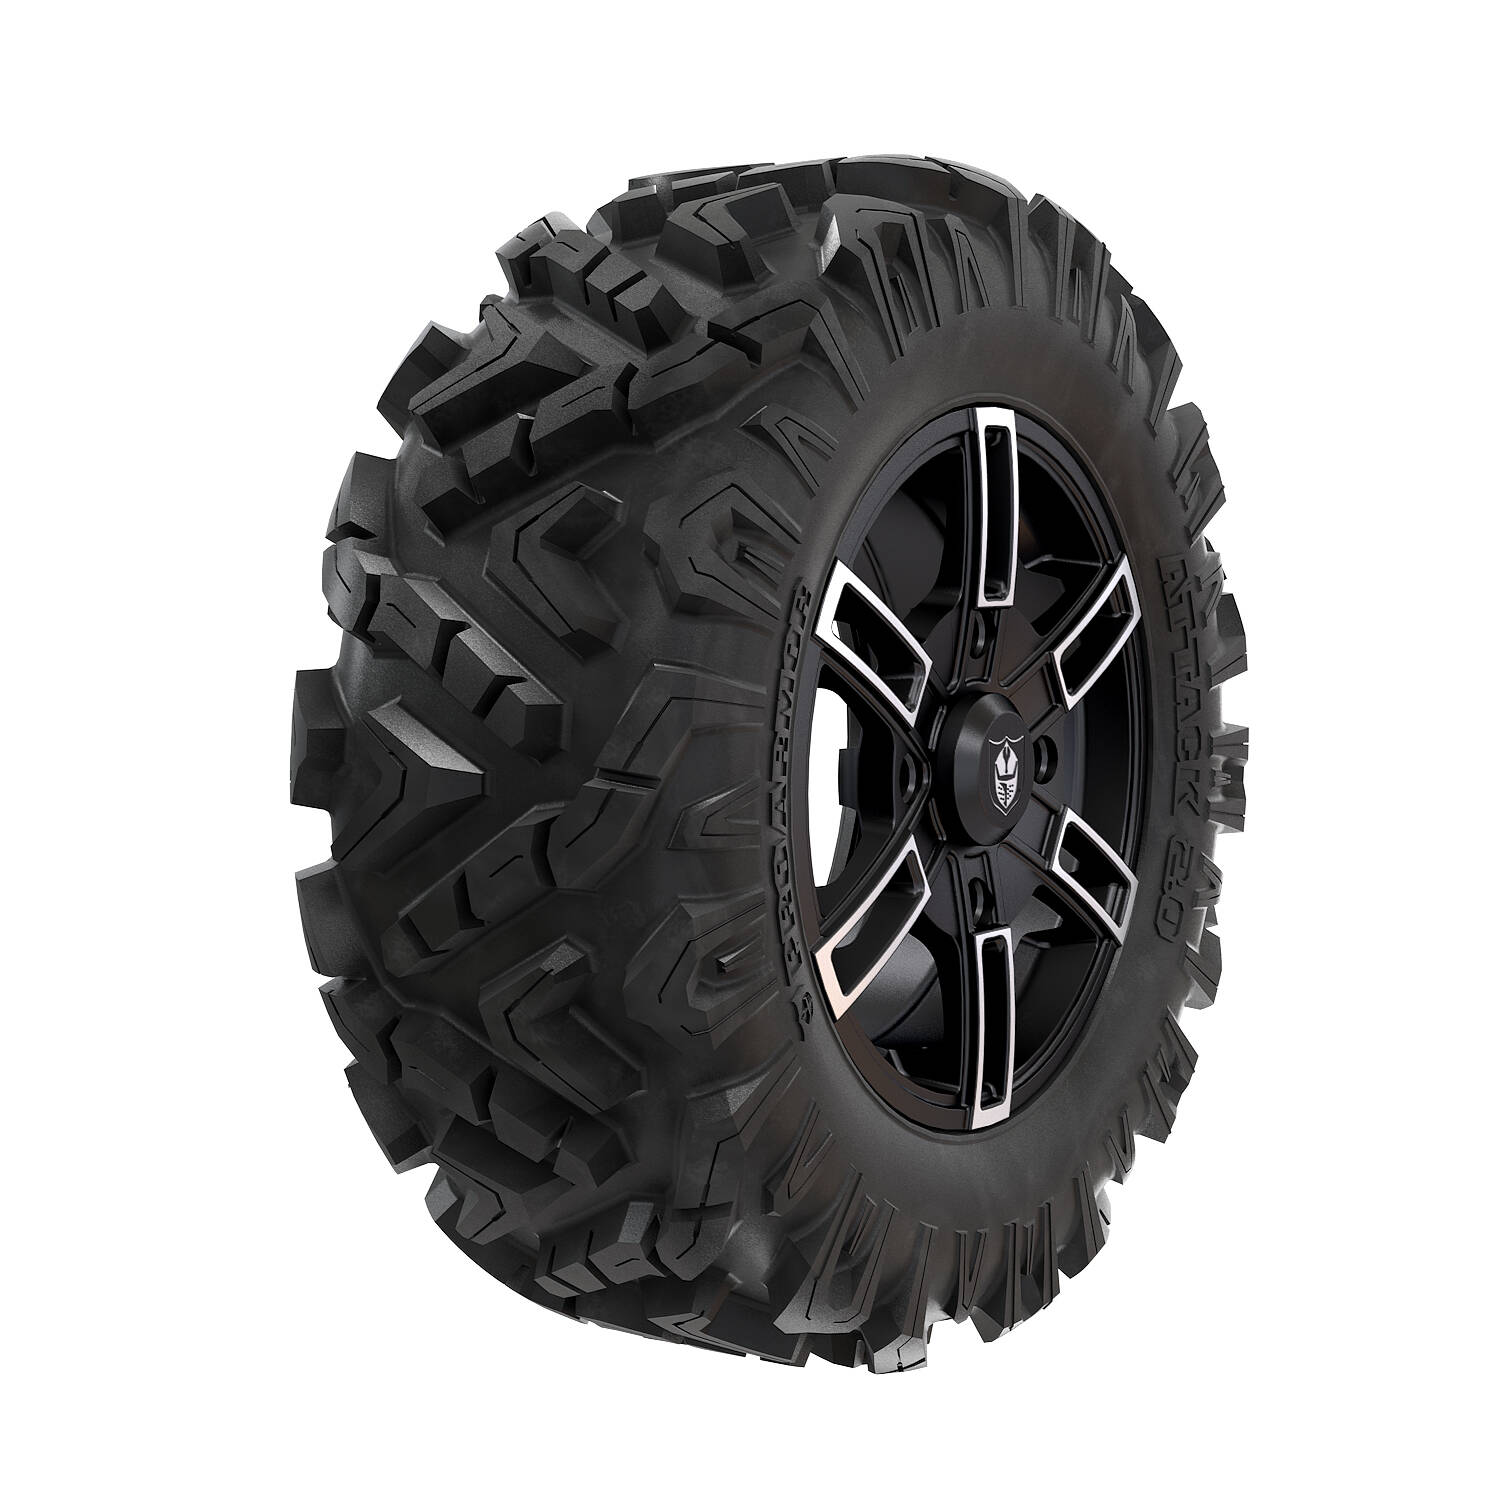 Pro Armor® Wheel & Tire Set: Wyde - Accent & Attack 2.0 - 28""